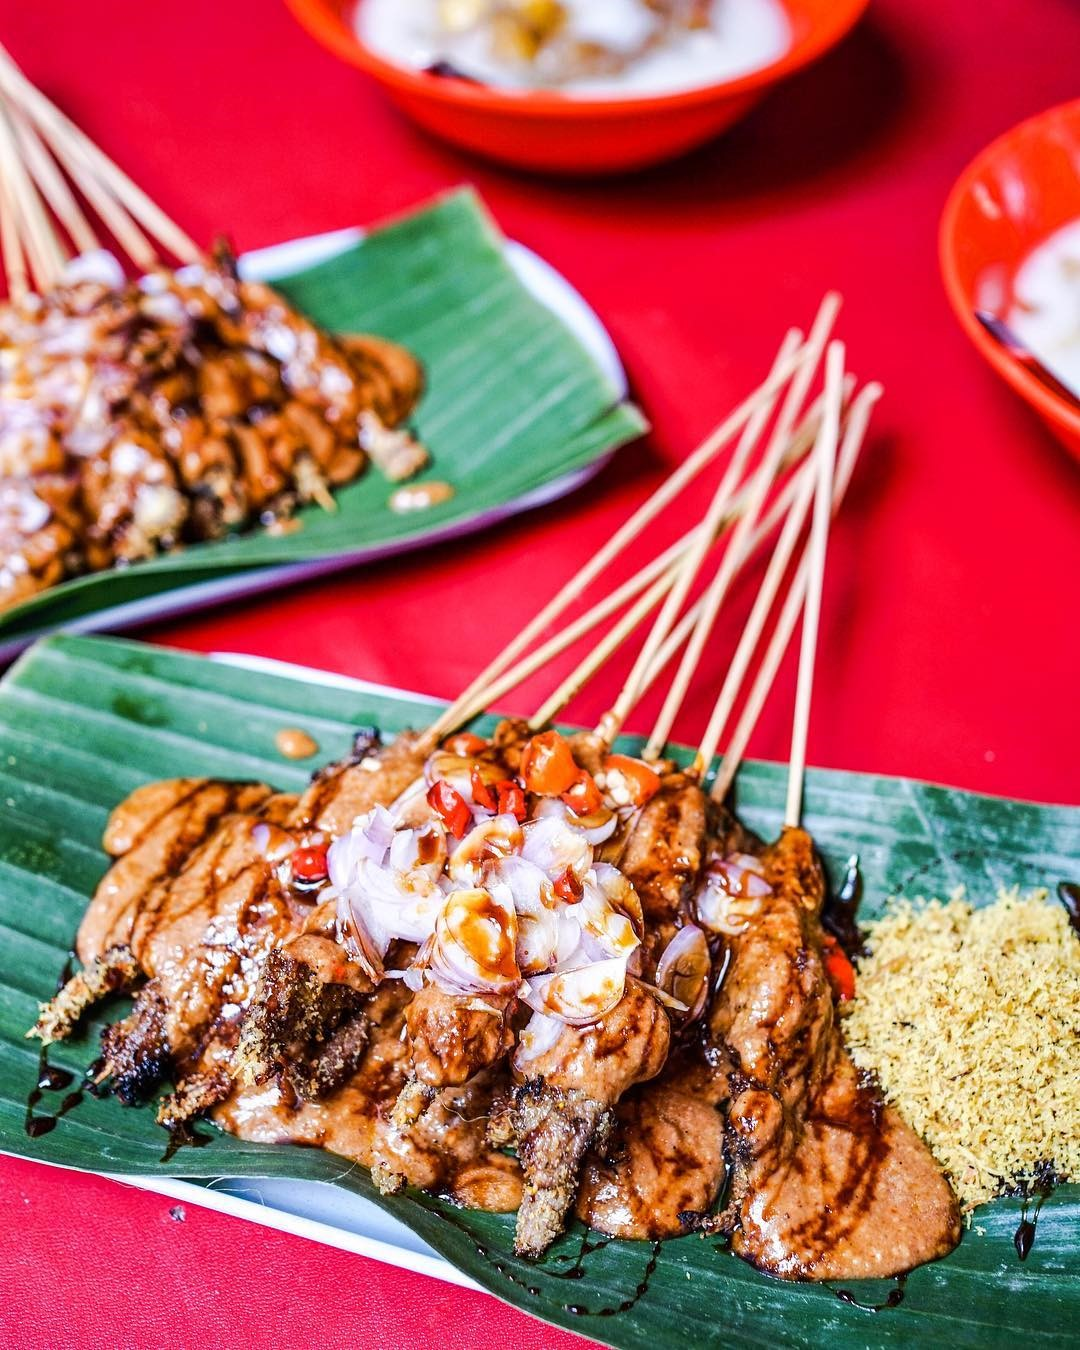 Best Surabaya restaurants & food you must try_nasi empal pengampon sate